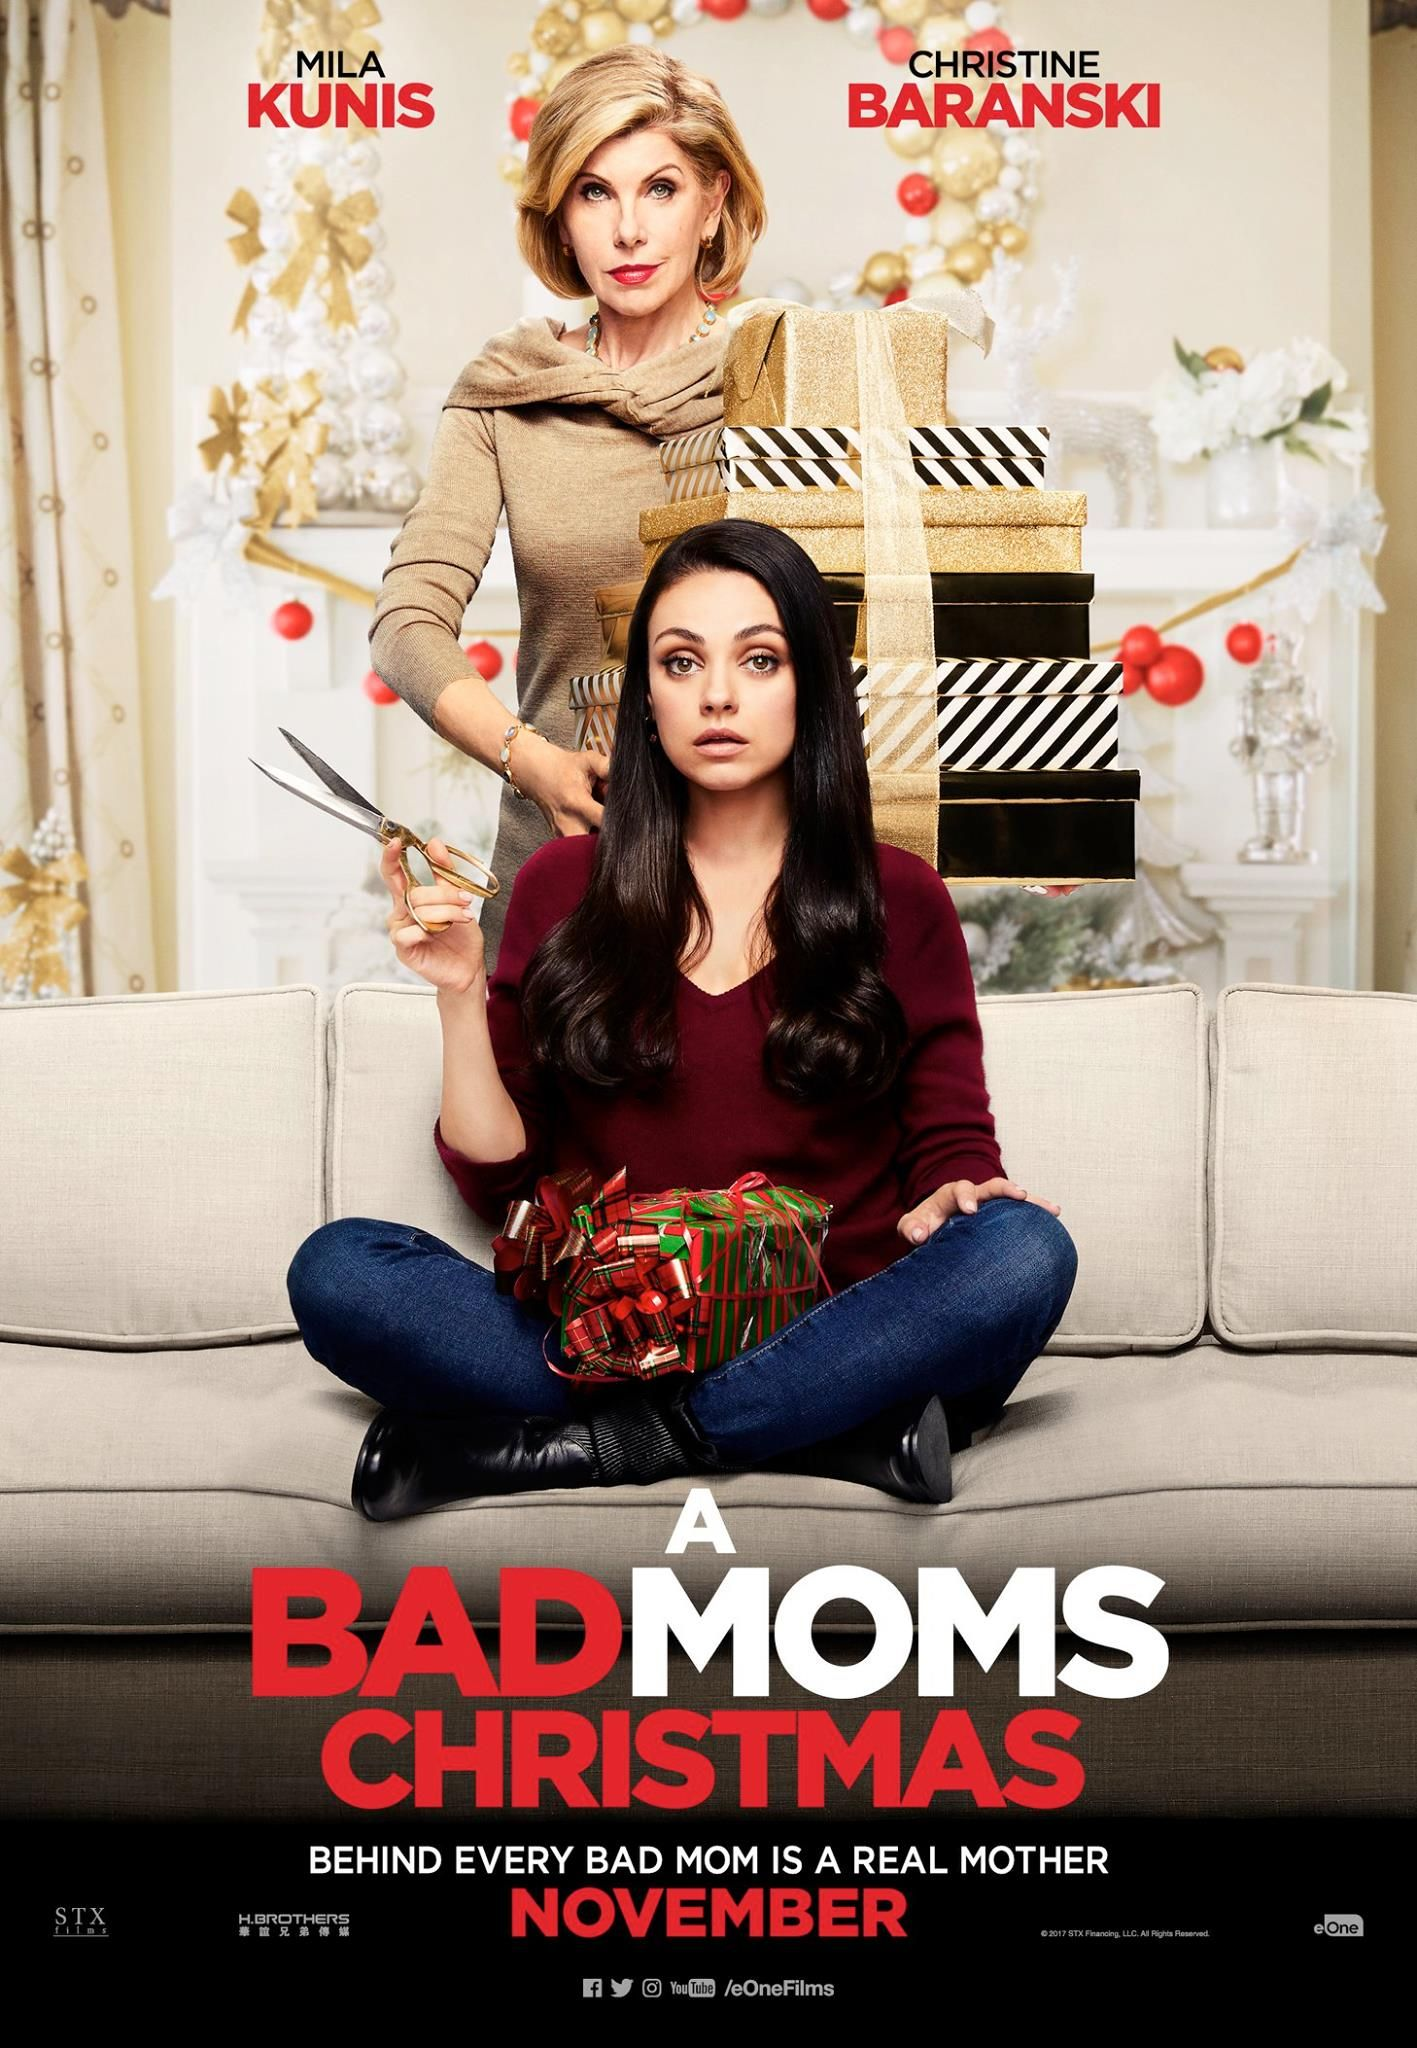 A BAD MOMS CHRISTMAS CHARACTER POSTER | Holiday Movies | Pinterest ...